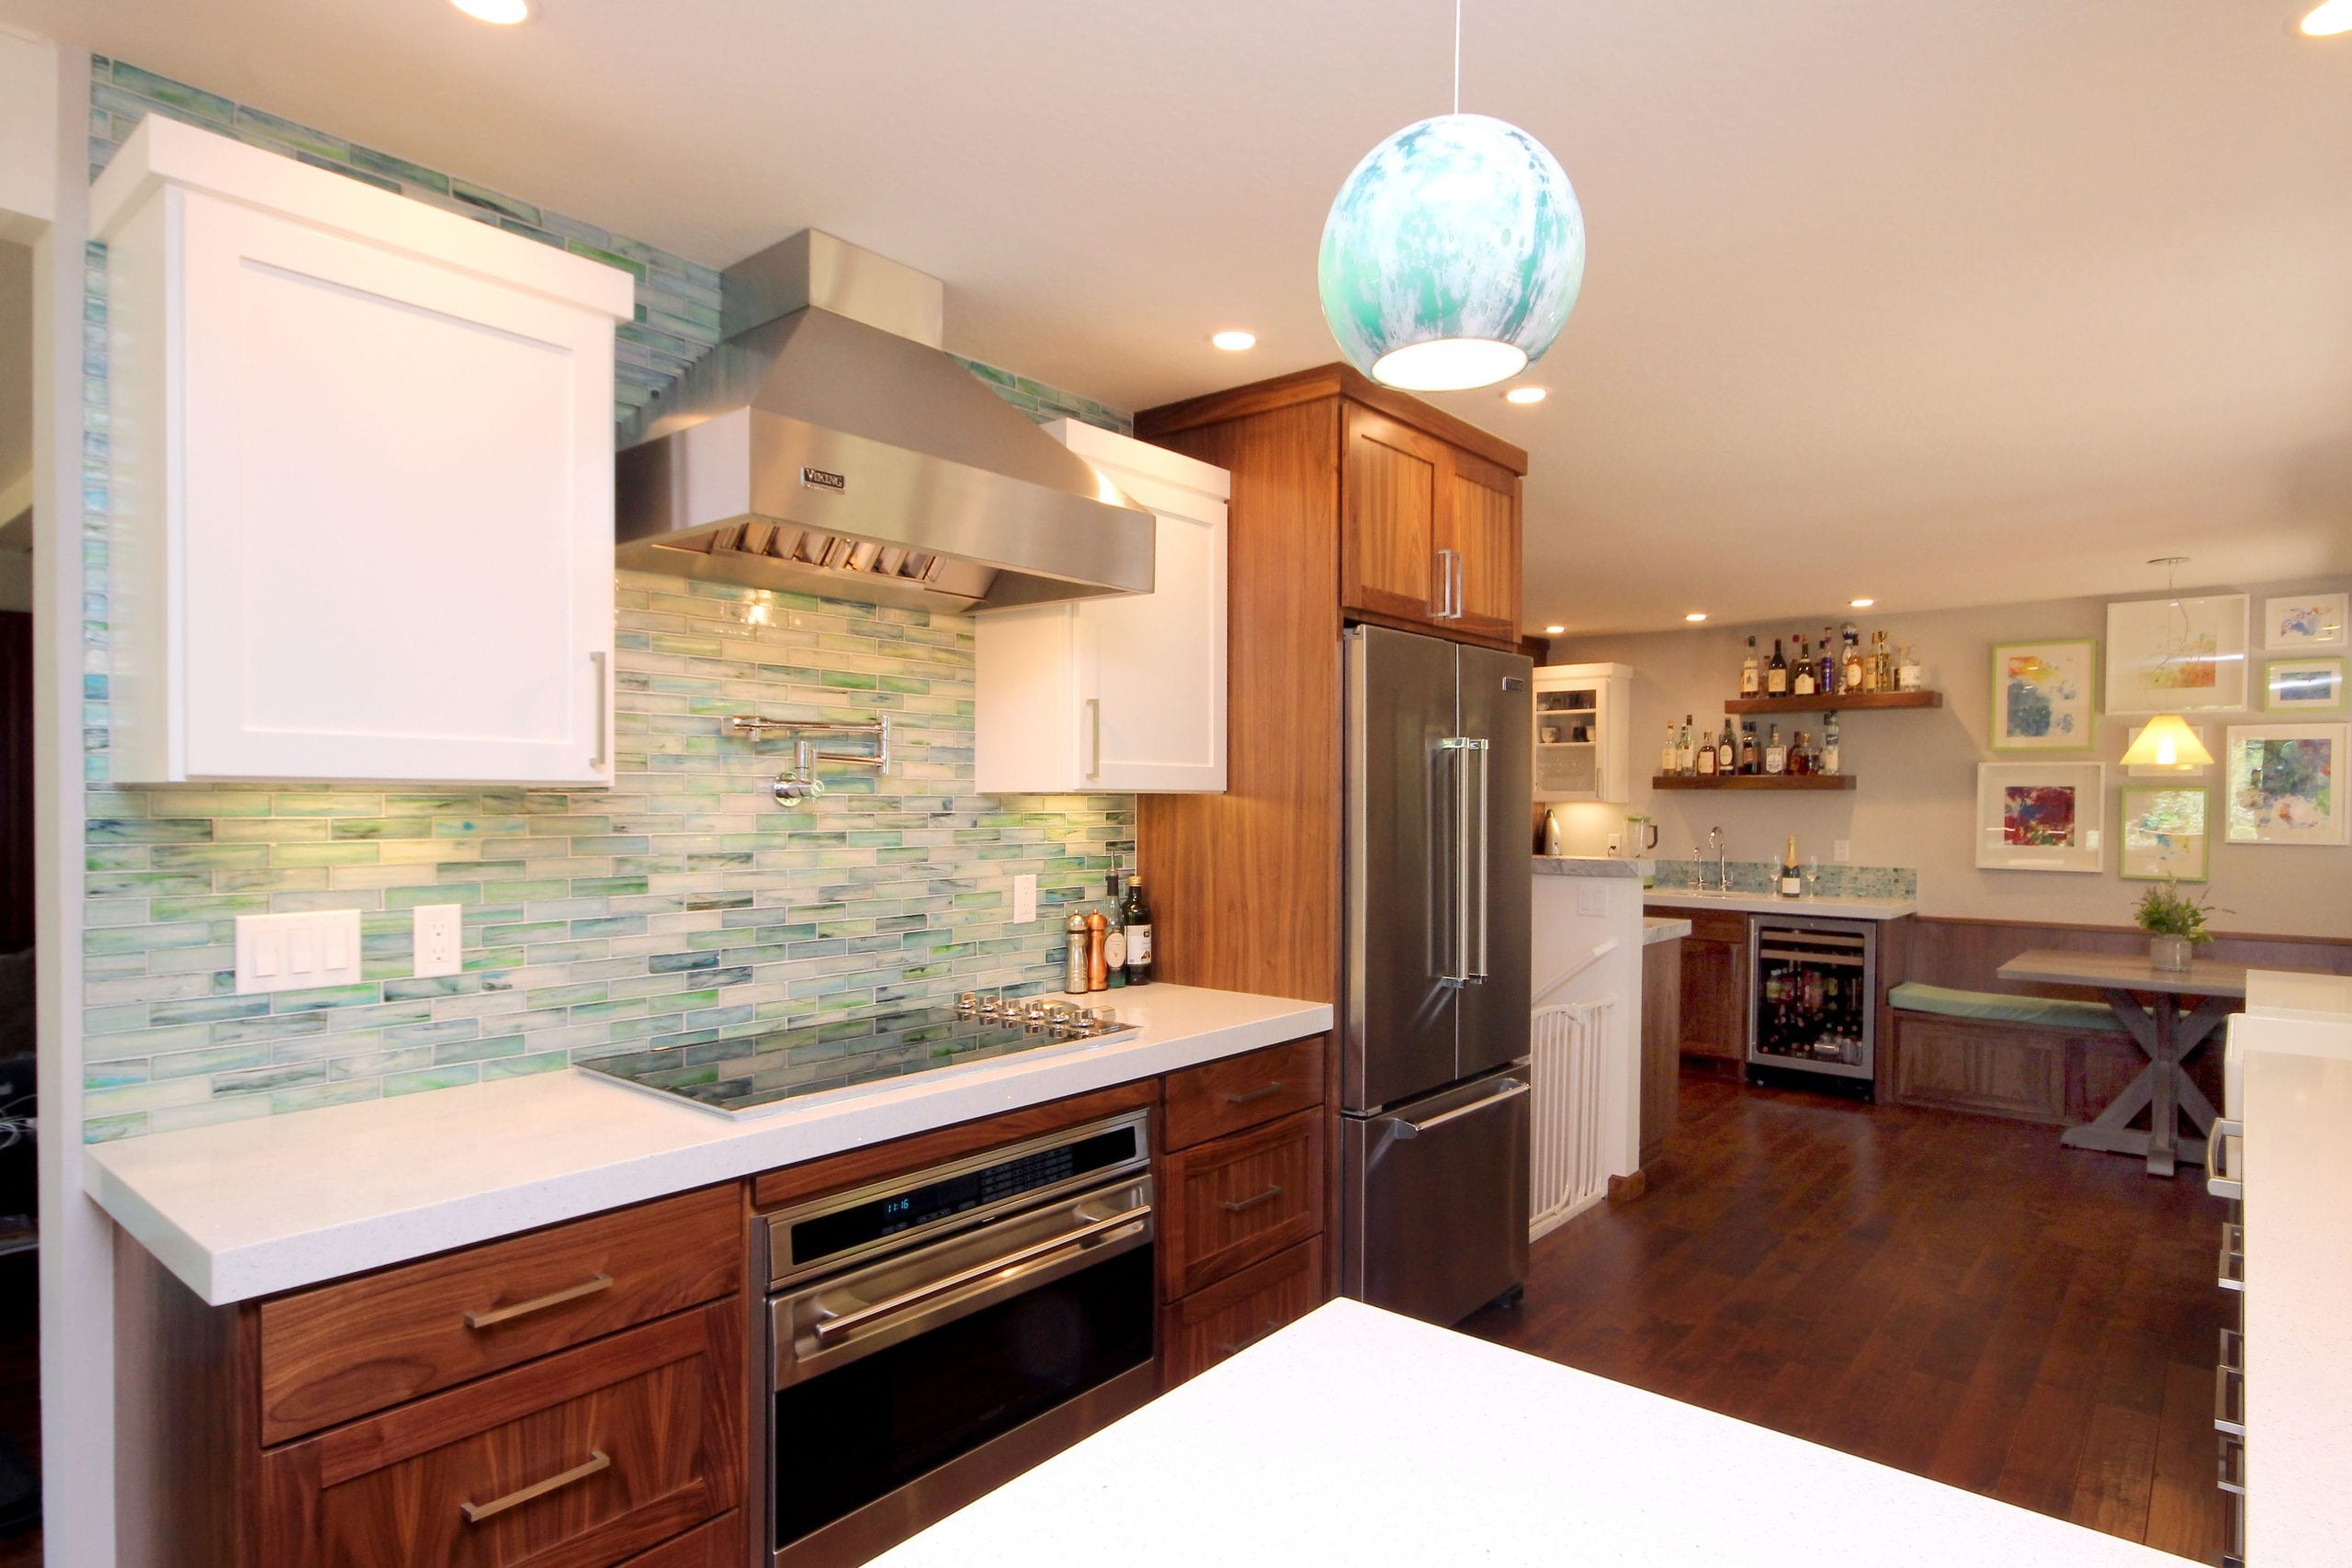 A KISS OF CONTEMPORARY | SCOTTS VALLEY KITCHEN REMODEL